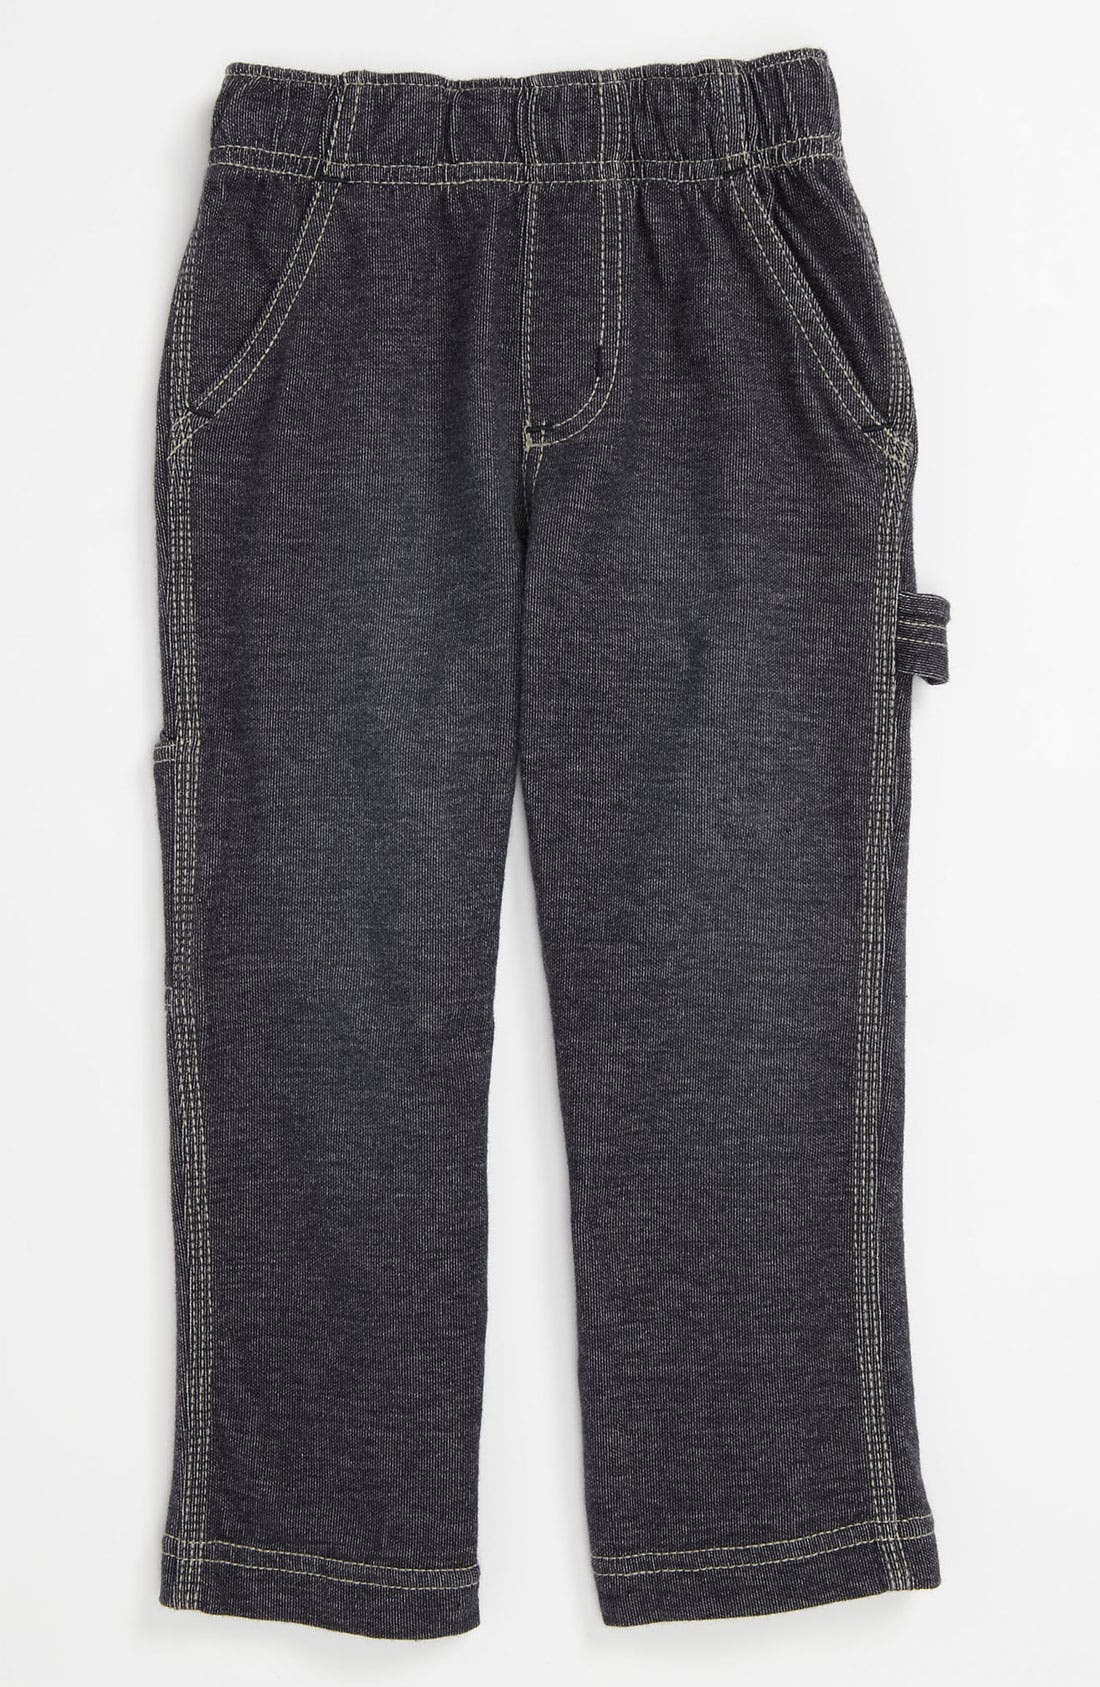 Alternate Image 1 Selected - Tea Collection Carpenter Pants (Toddler)